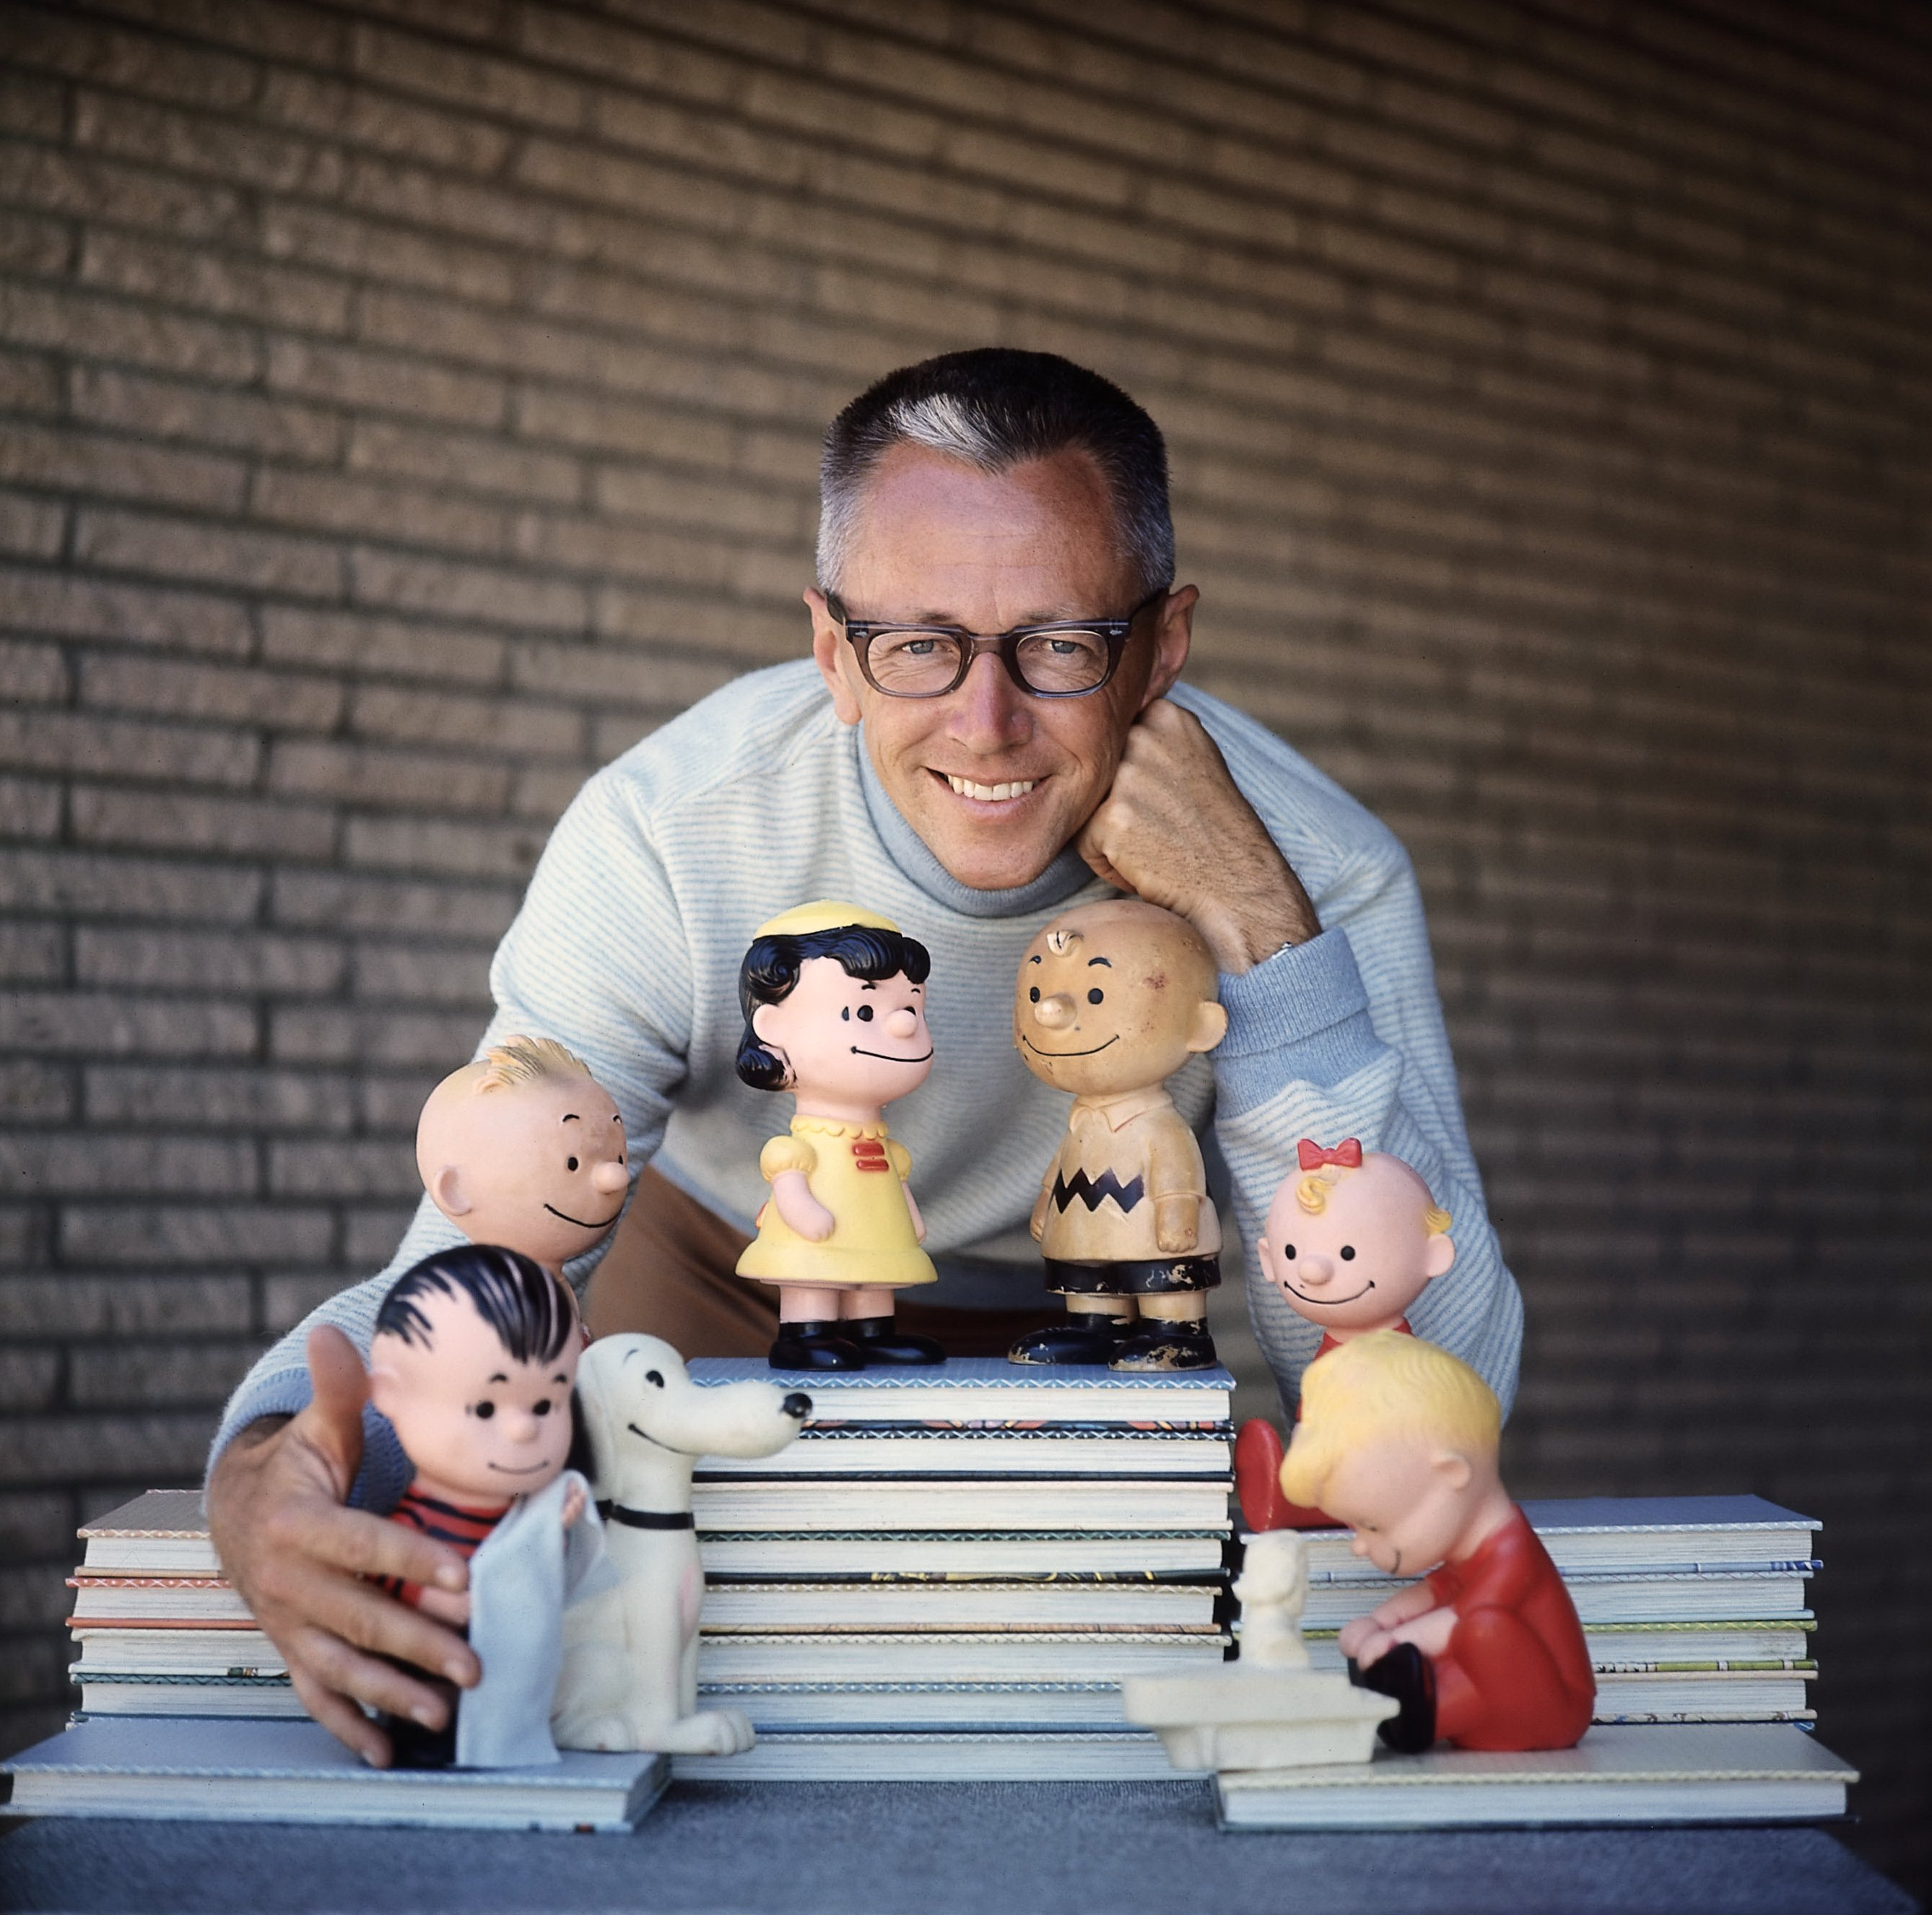 Image Credits: Getty Images | Charles Schulz